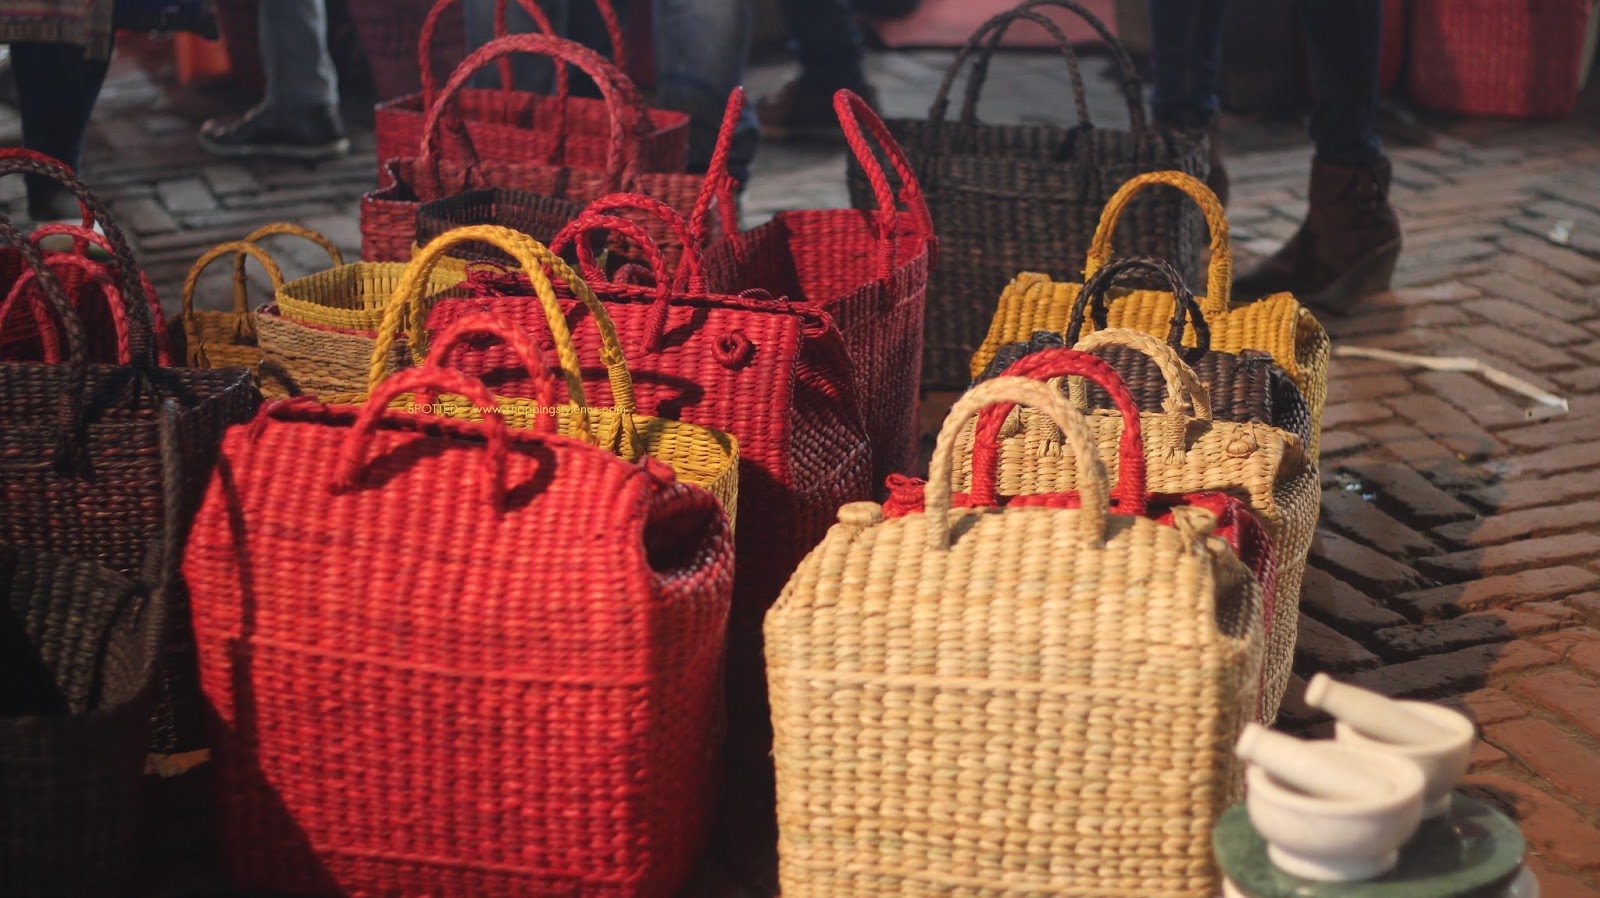 Woven Grass Tote Bags and Baskets - whether someone wants to become a  street style fashionista or a save-the-planet kinds 14932fa058324